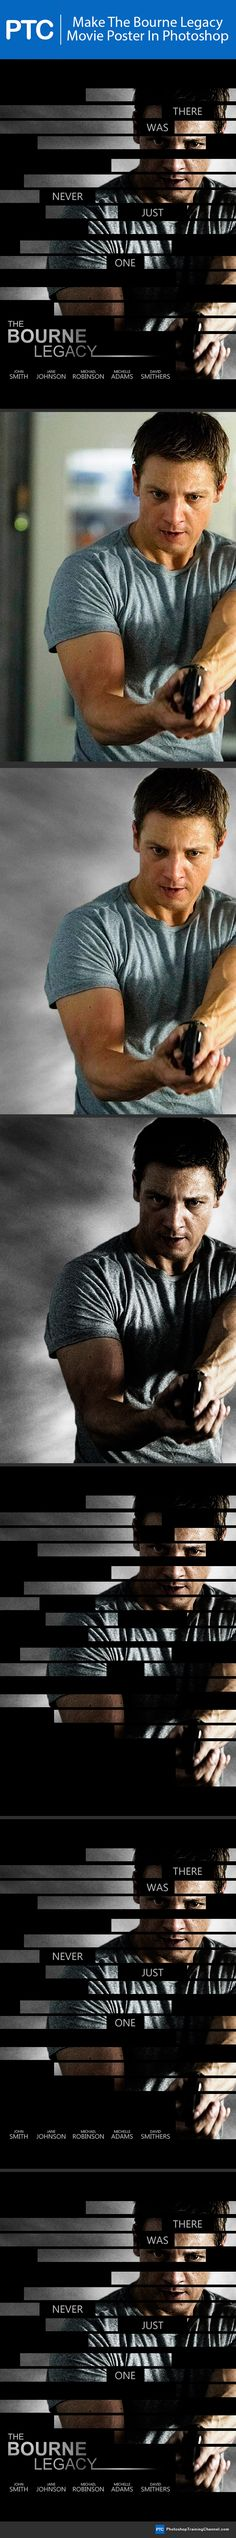 How To Make The Bourne Legacy Movie Poster In Photoshop. #Photoshop #tutorial #movie #poster http://photoshoptrainingchannel.com